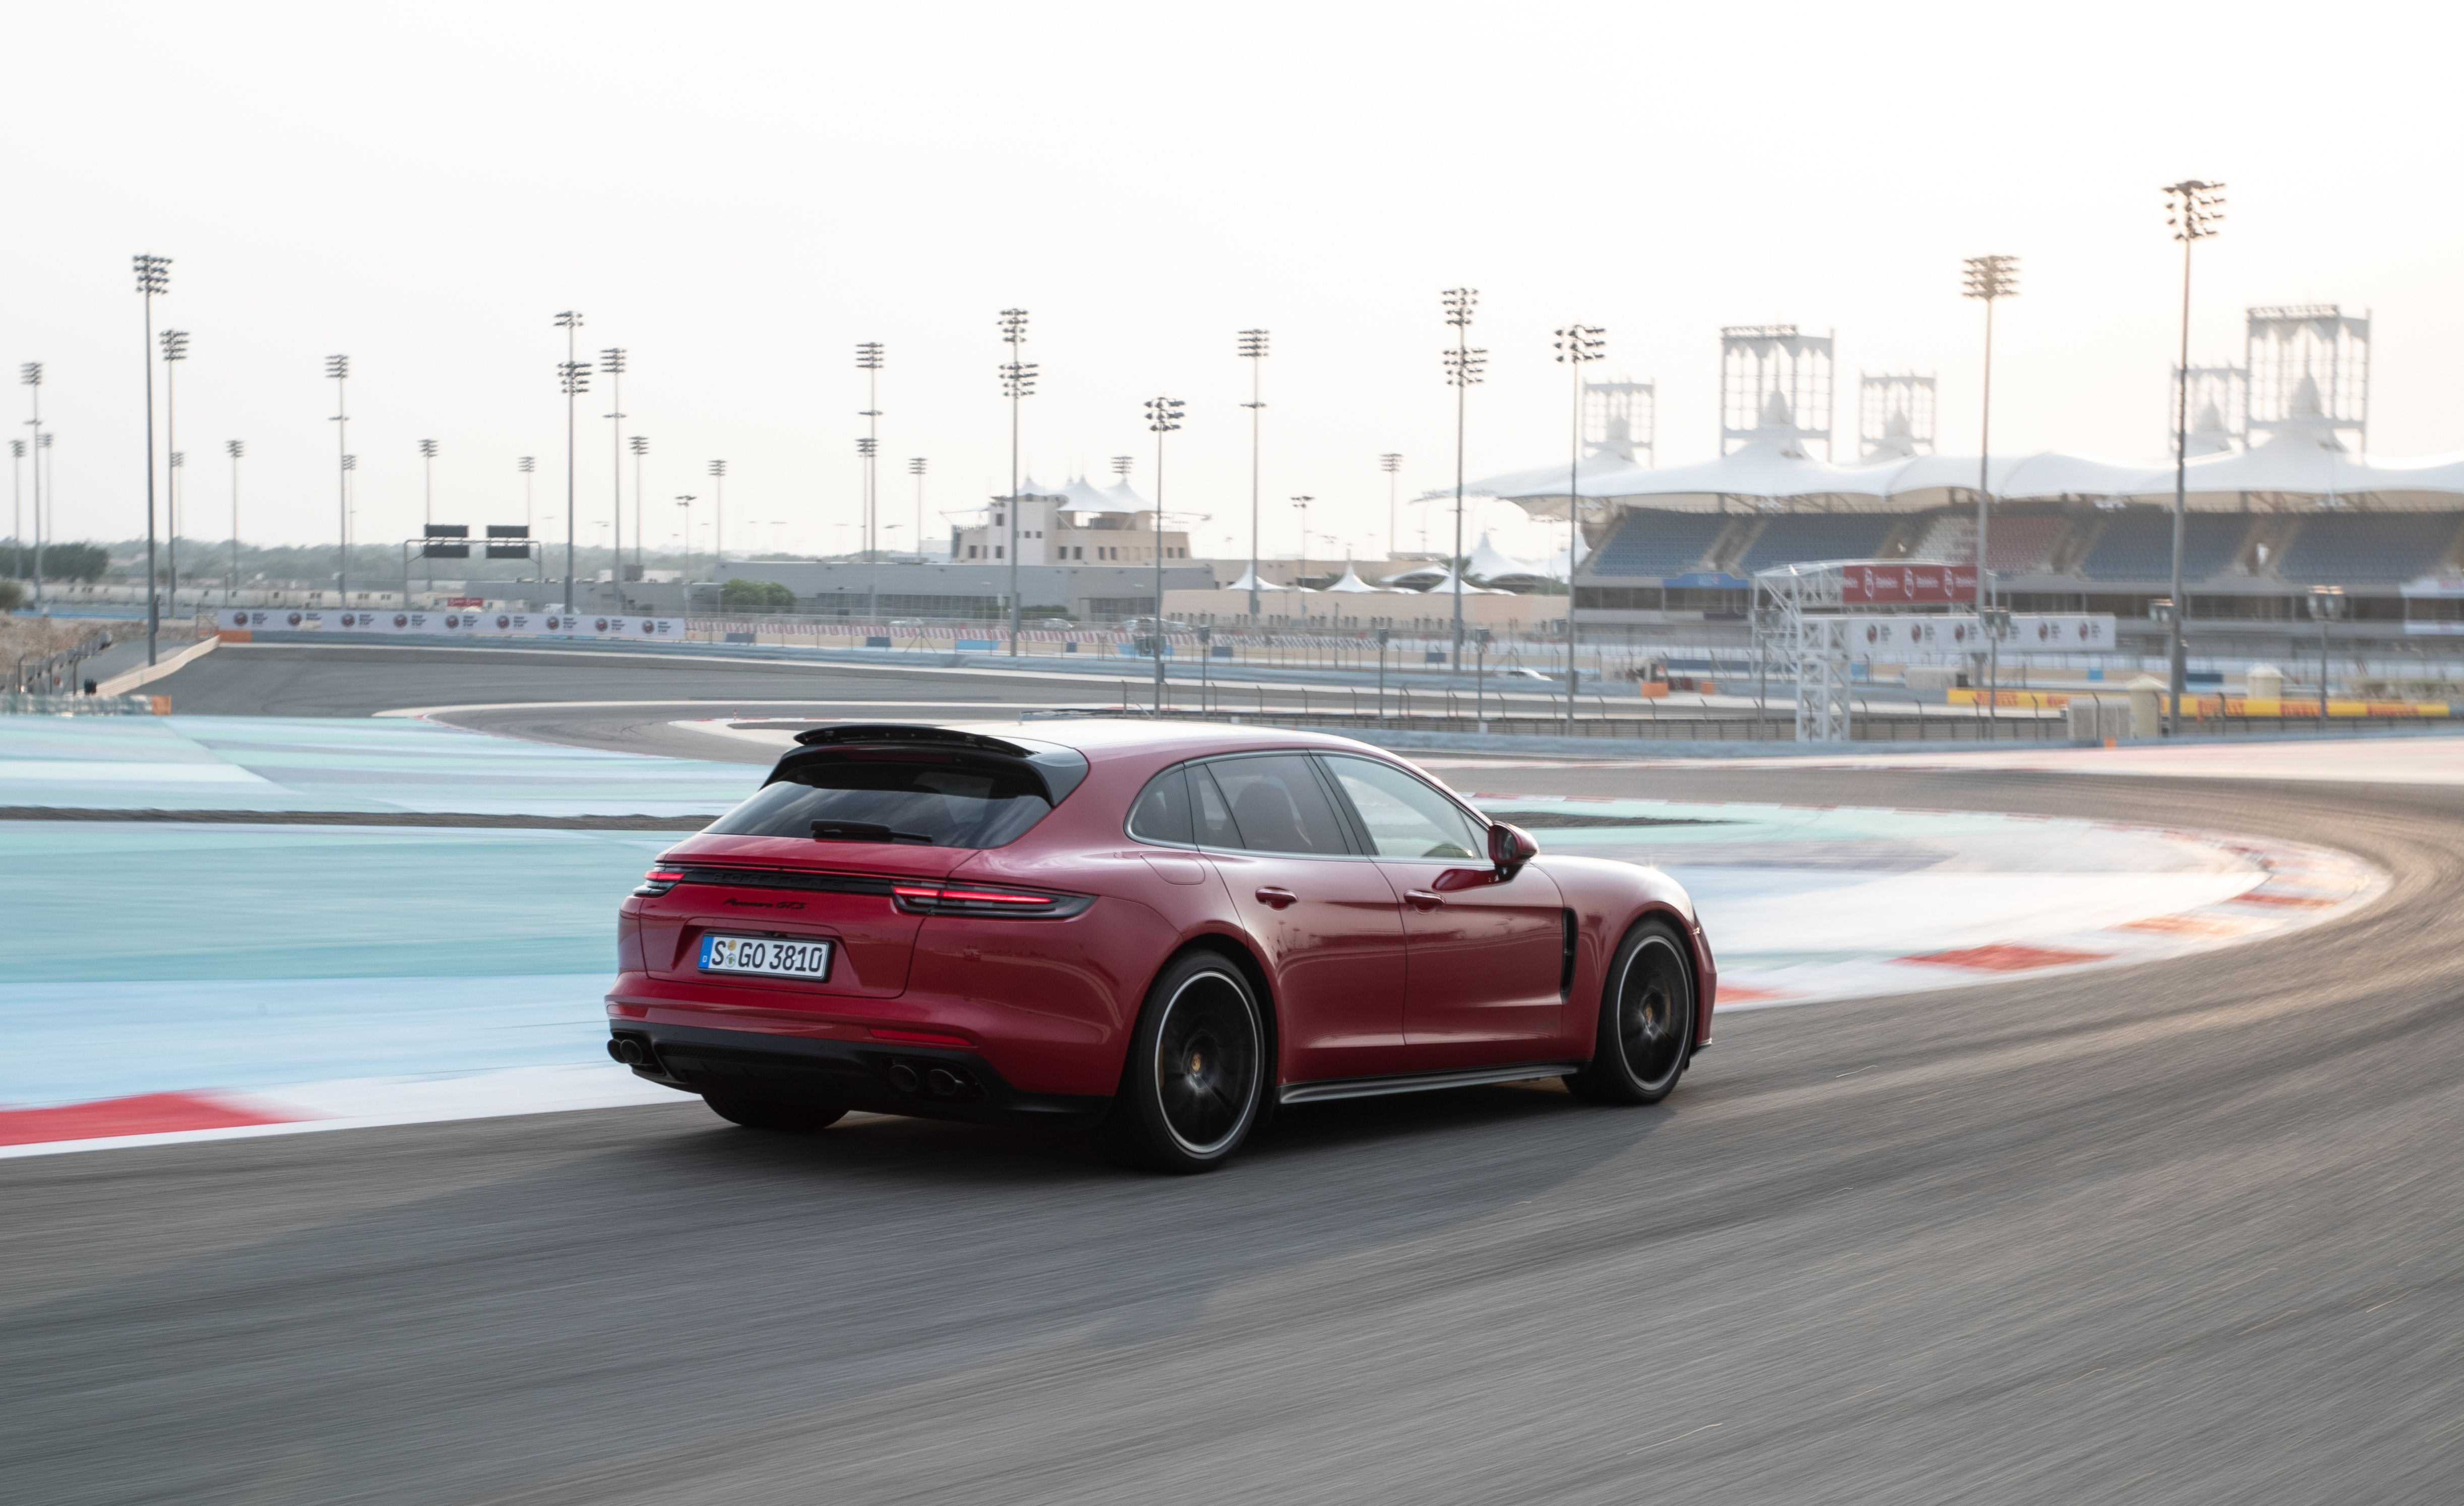 2019 Porsche Panamera GTS Sport Turismo Rear Three-Quarter Wallpapers (8)